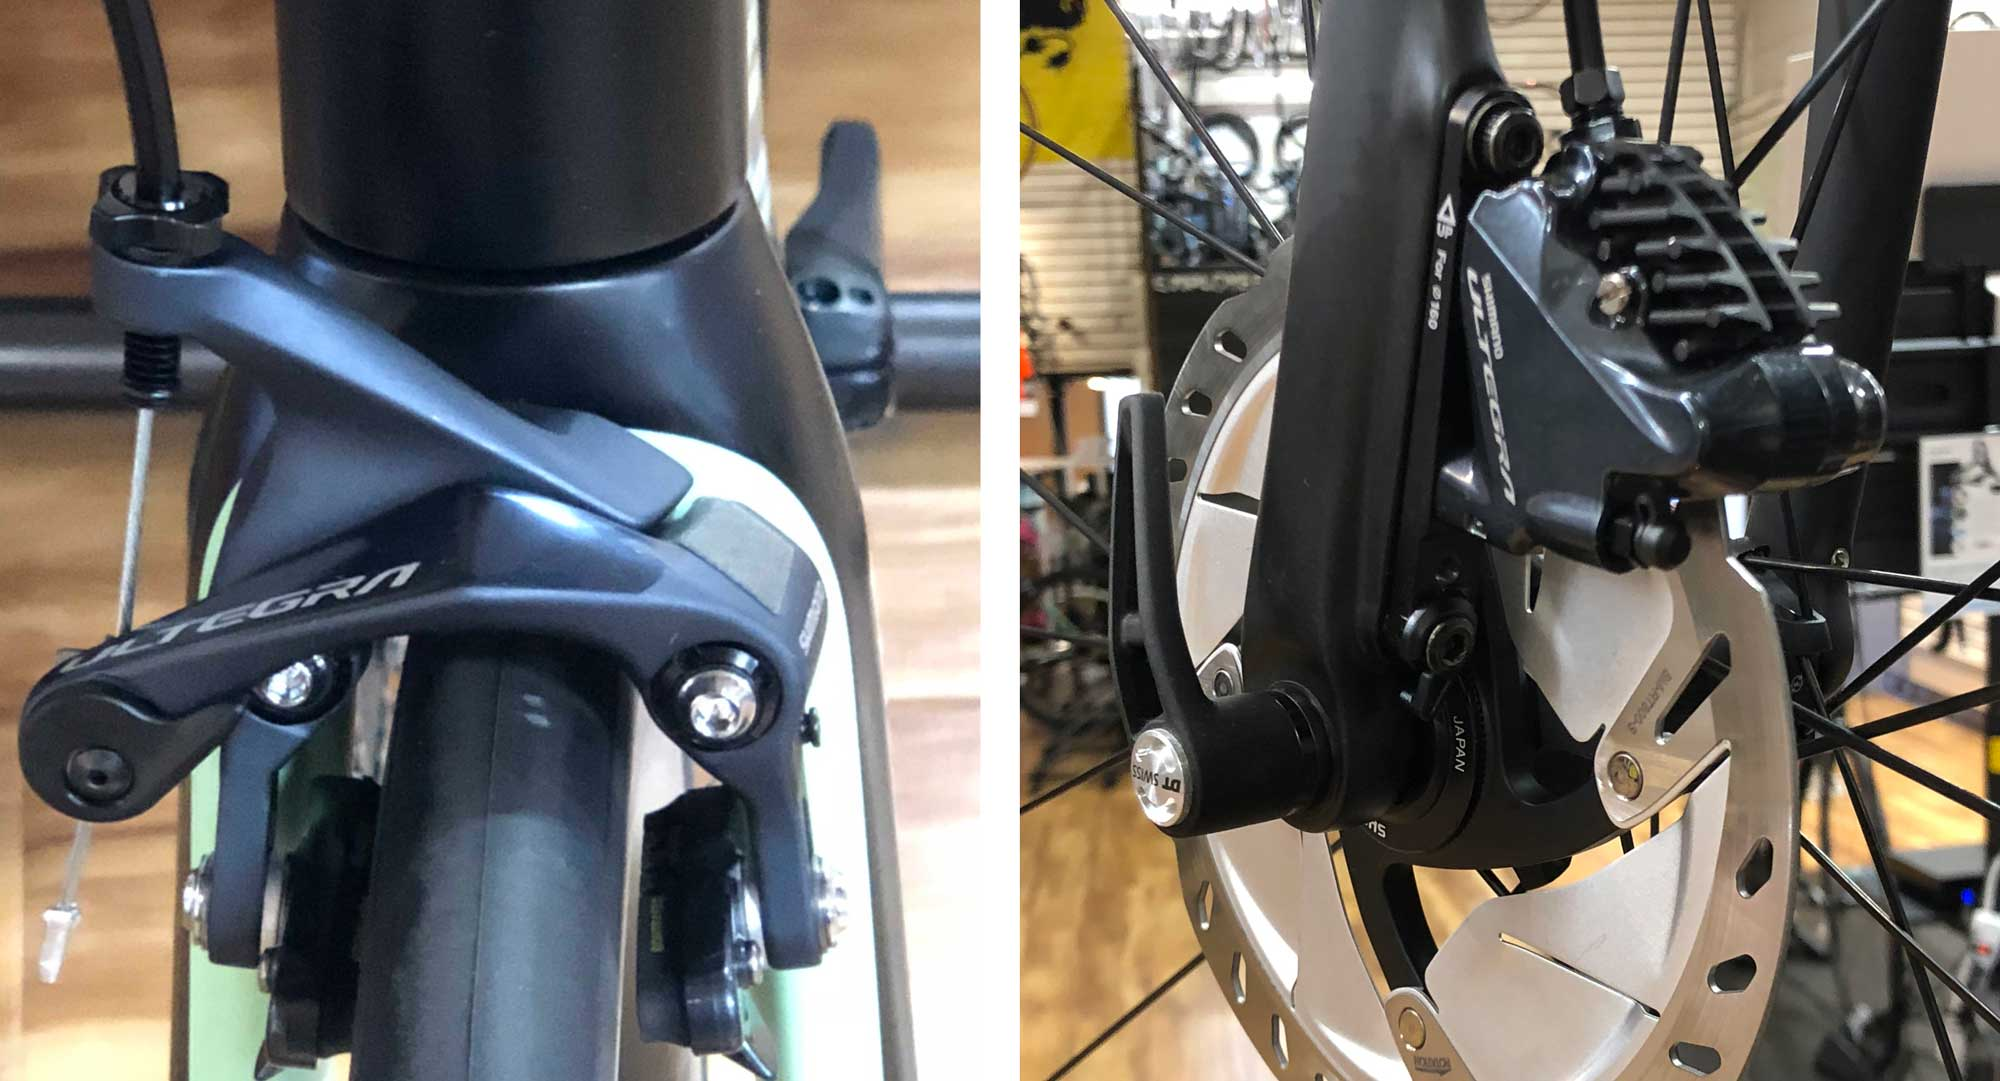 47582c7d242 Disc brake road bikes- Who wouldn't want better brakes? Don't I want them  on my next bike?